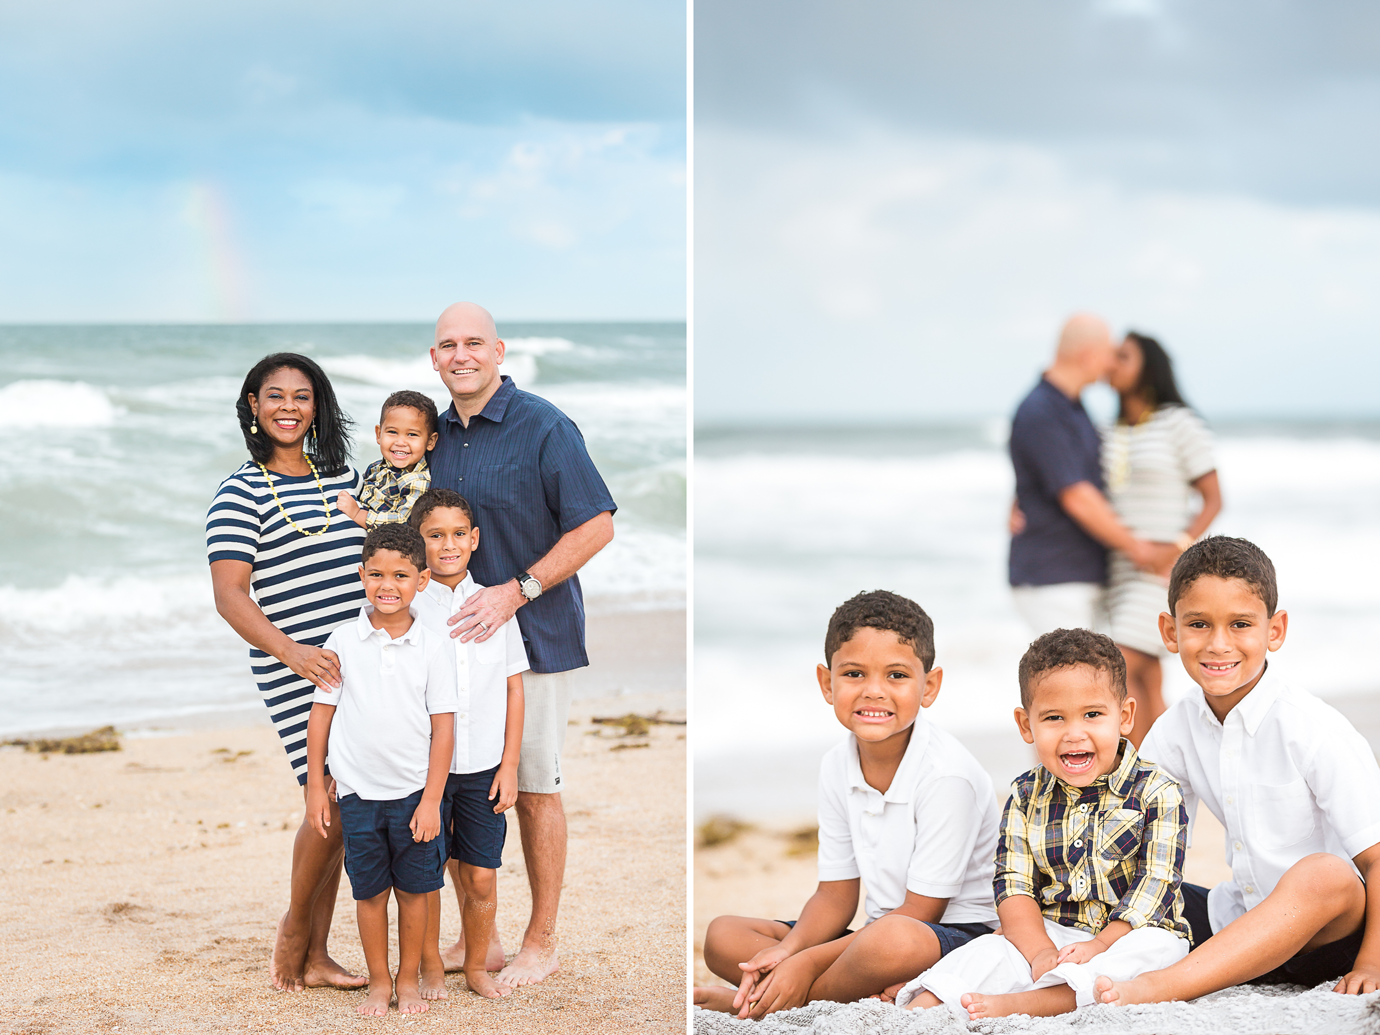 ponte vedra beaqch family photography